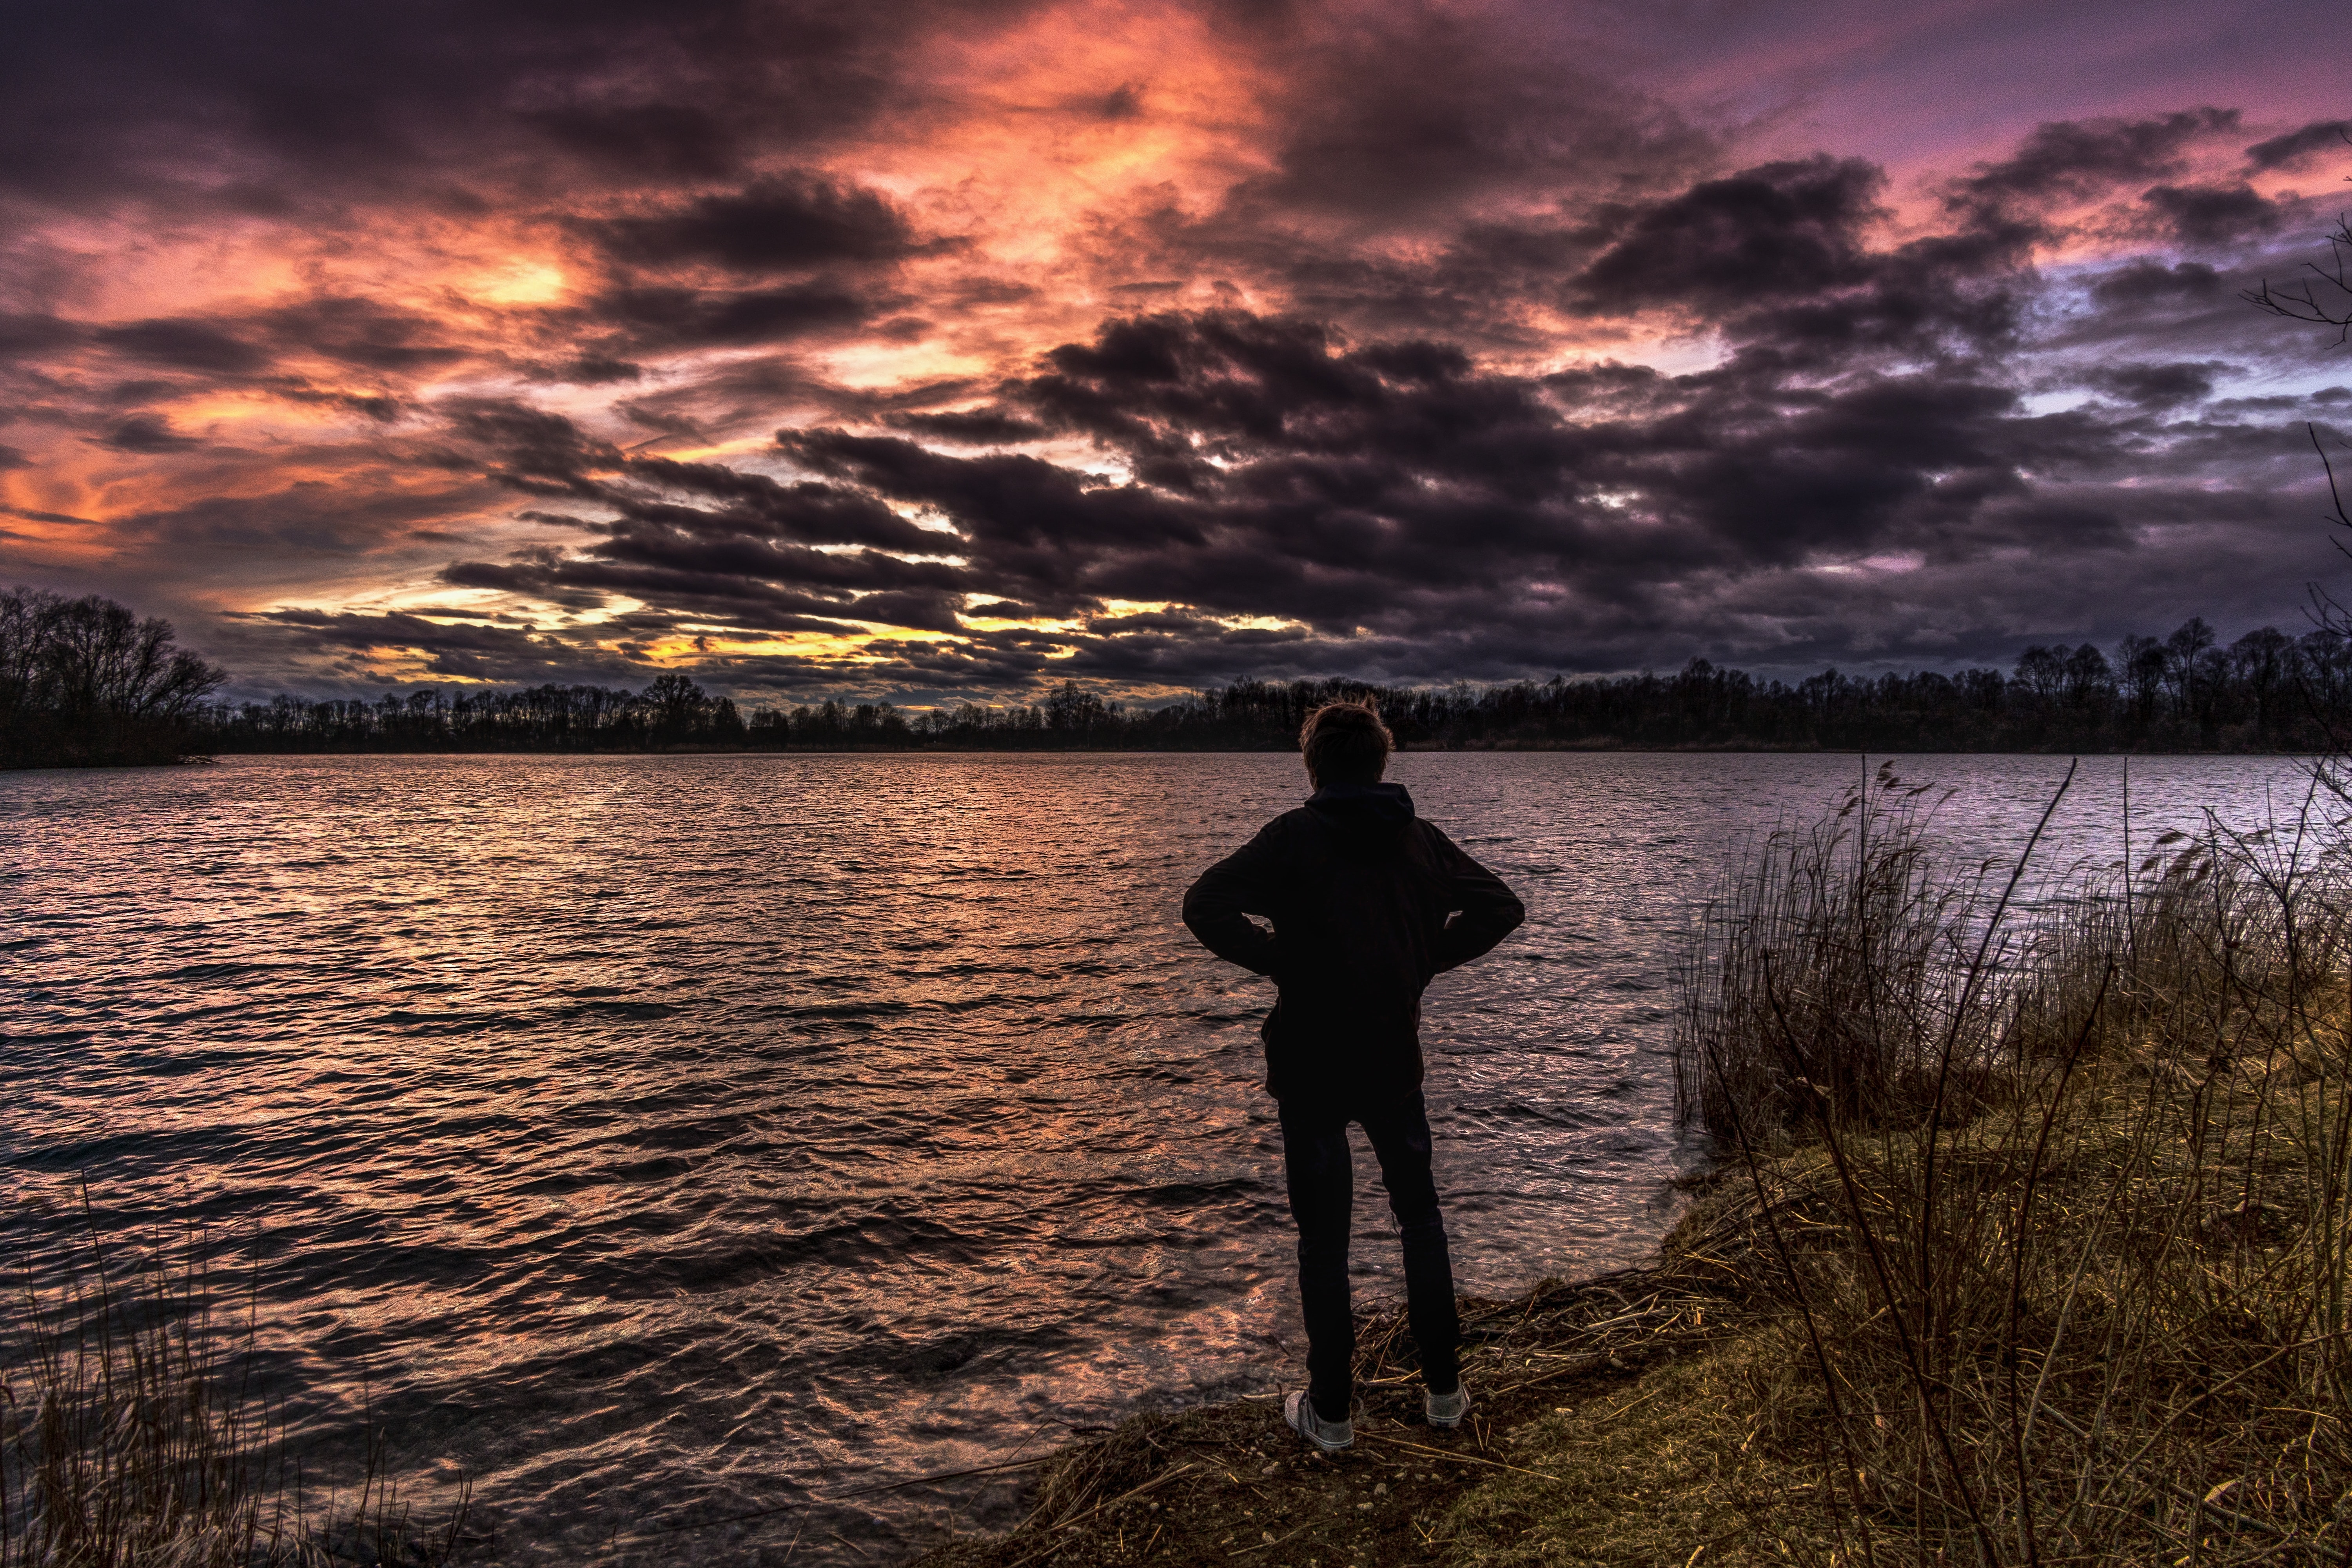 person standing near body of water during golden hour